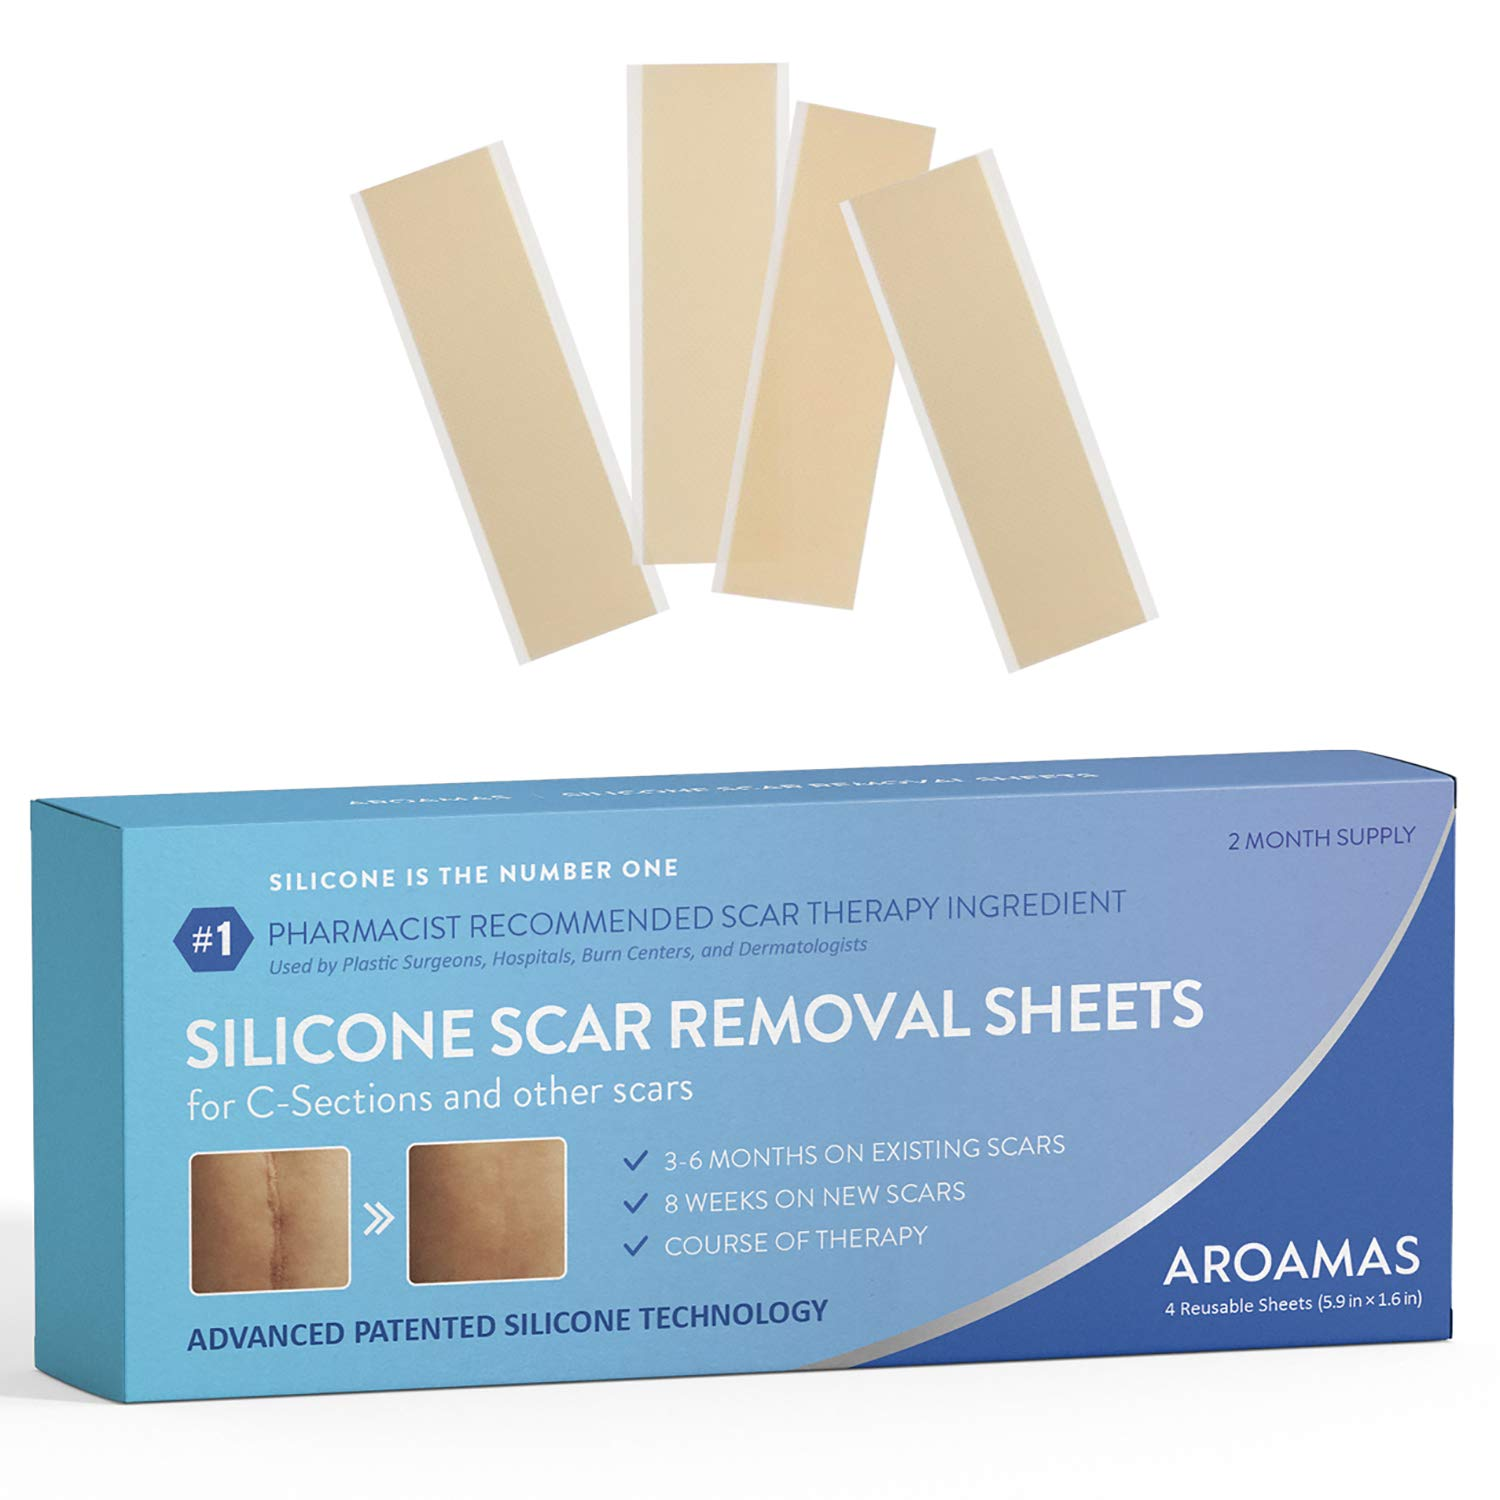 Aroamas Professional Silicone Scar Removal Sheets for Scars Caused by C-Section, Surgery, Burn, Keloid, Acne, and more, Soft Adhesive Fabric Strips, Drug-Free, 5.7''×1.57'', 4 Reusable pcs (2 Month Supply)  by Aroamas